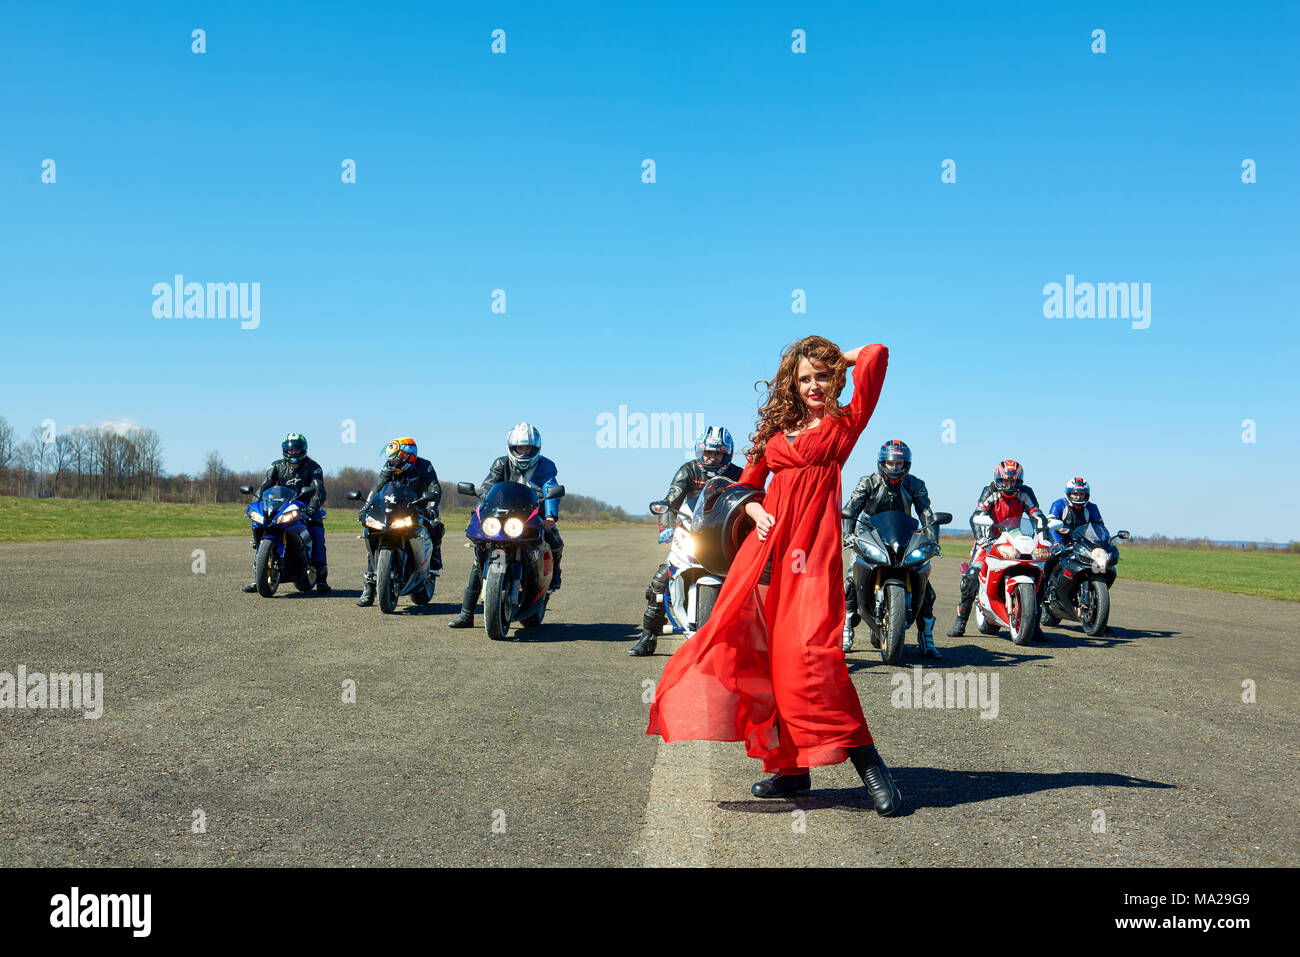 Kiev, Ukraine - 29 March 2017: Young woman in dispersing red dress is posing in front of seven bikers sitting on motorcycles somewhere on long road on green field. Emotional, colorful, original. - Stock Image